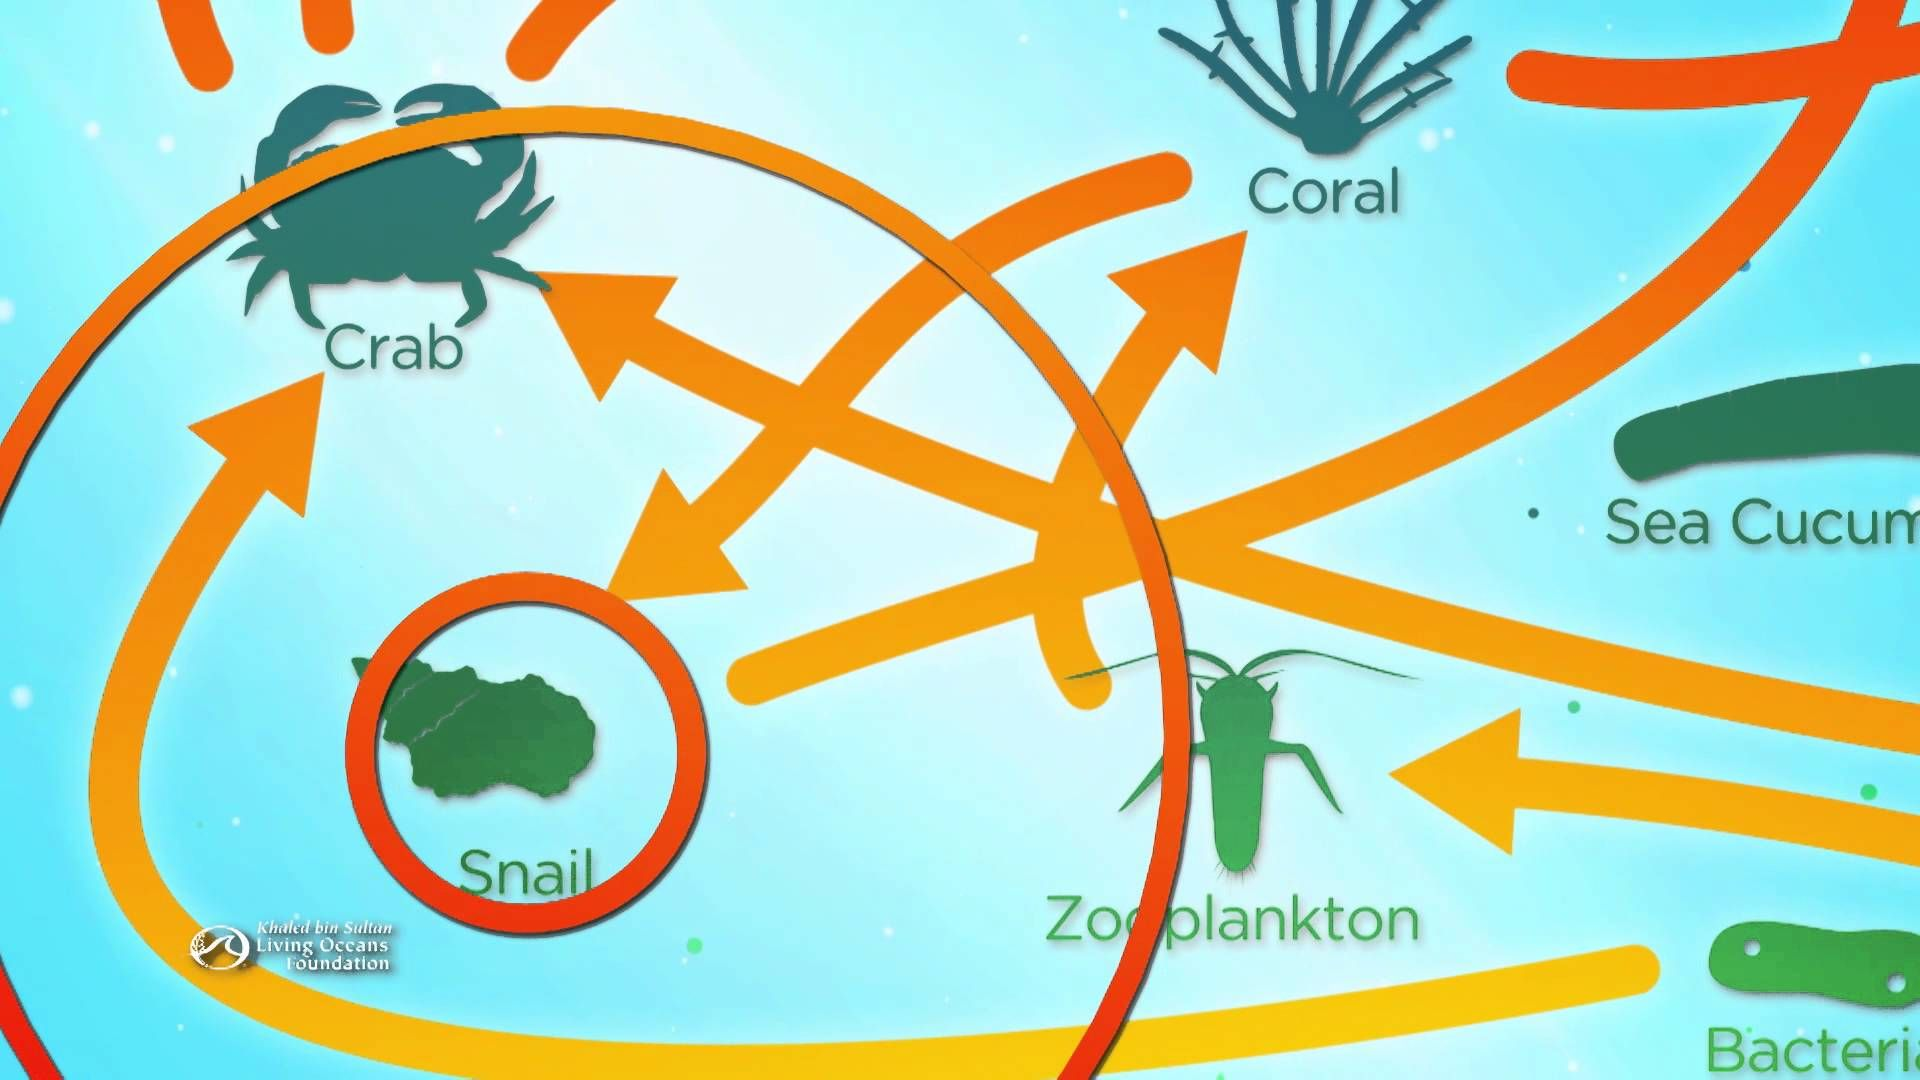 Coral Reefs Are An Ecosystem That Supports Millions Of